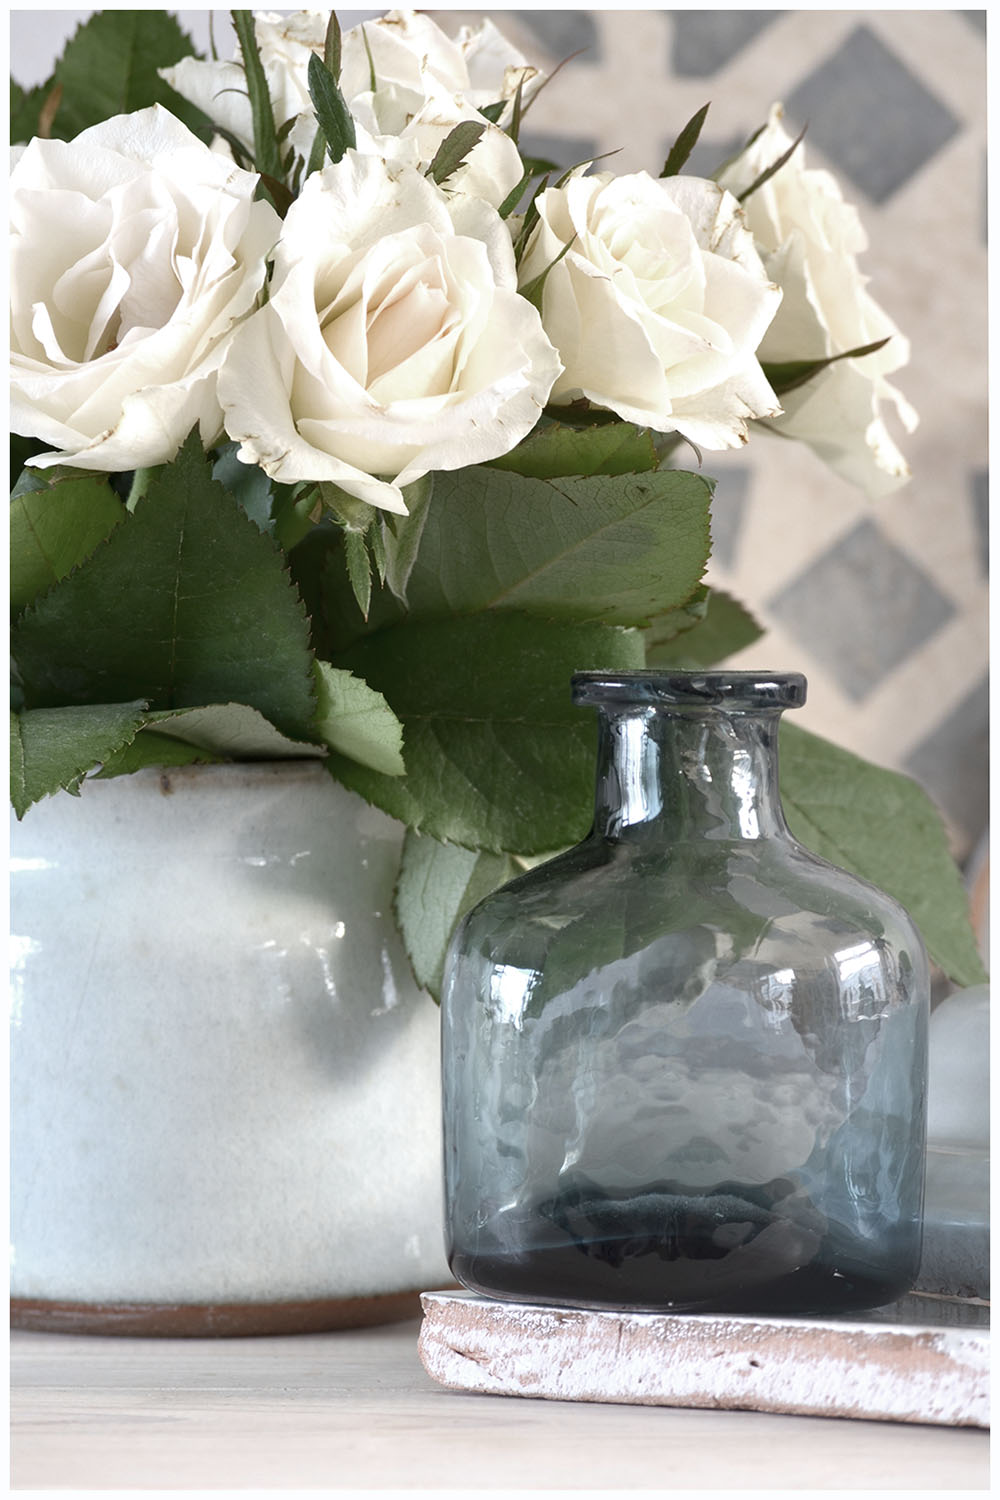 White roses, blue bottle, moroccan tile